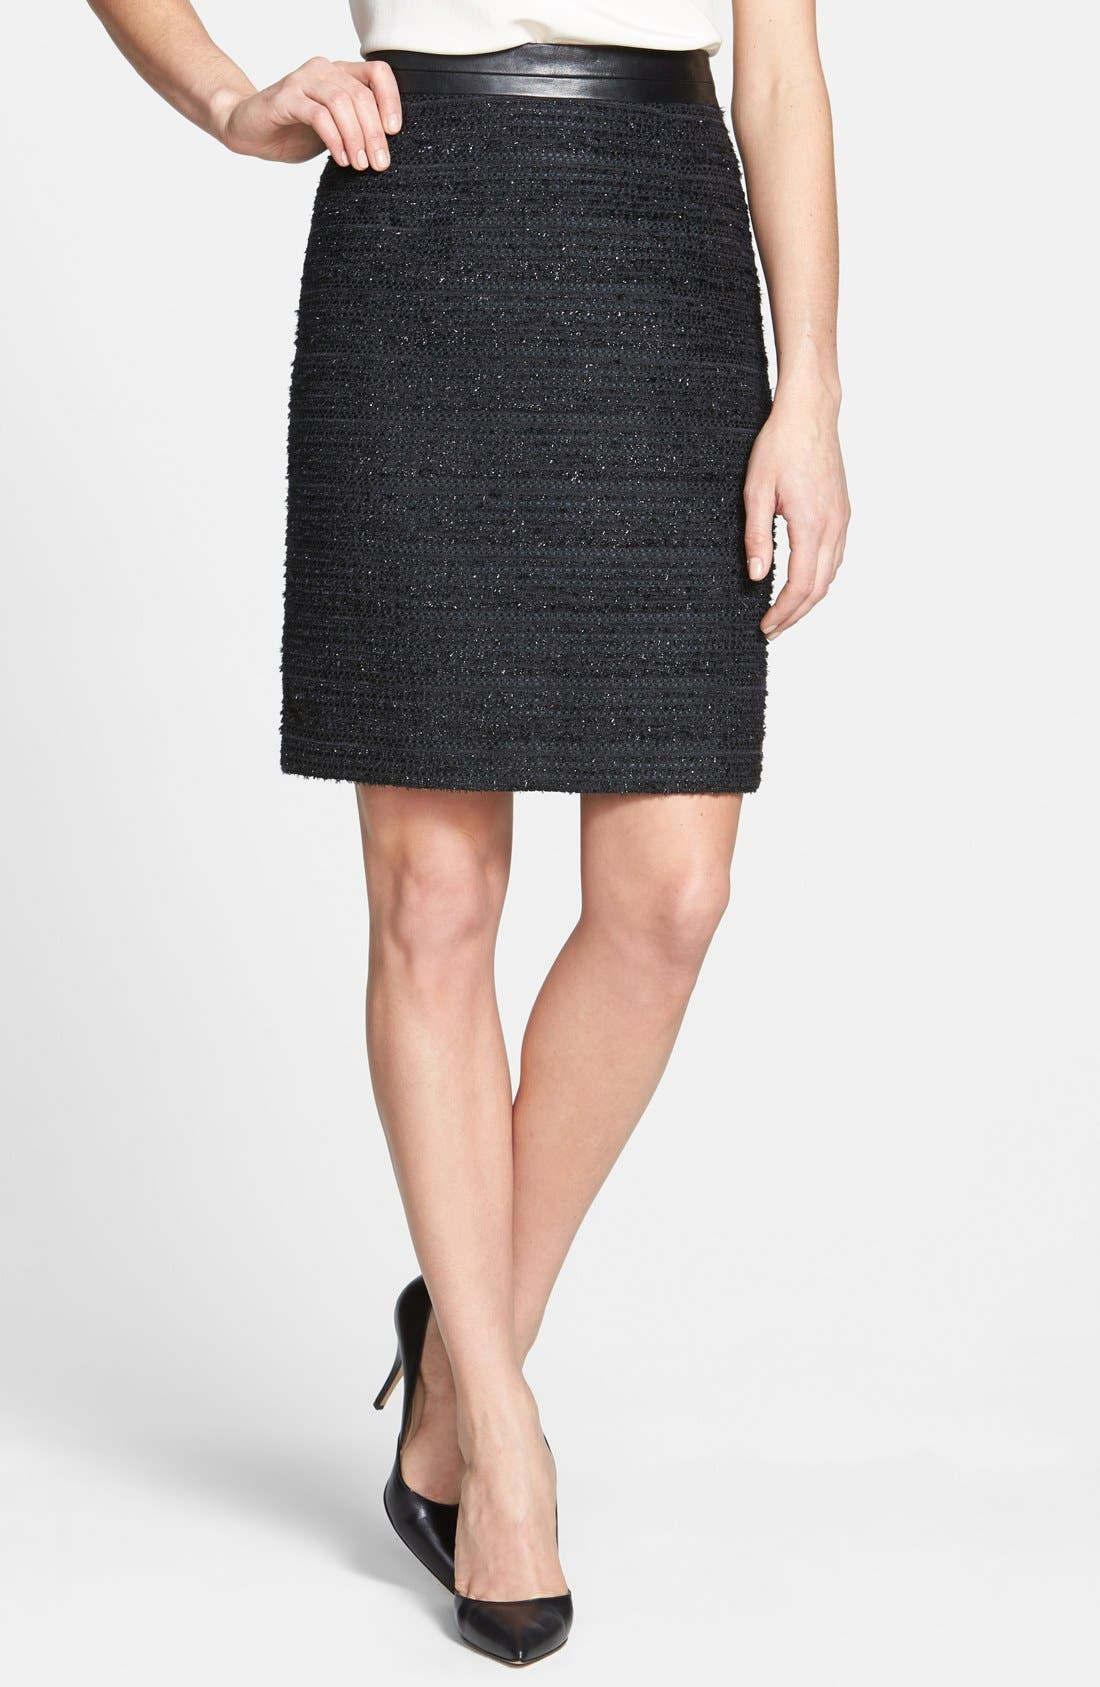 Alternate Image 1 Selected - Milly Metallic Tweed & Leather Pencil Skirt